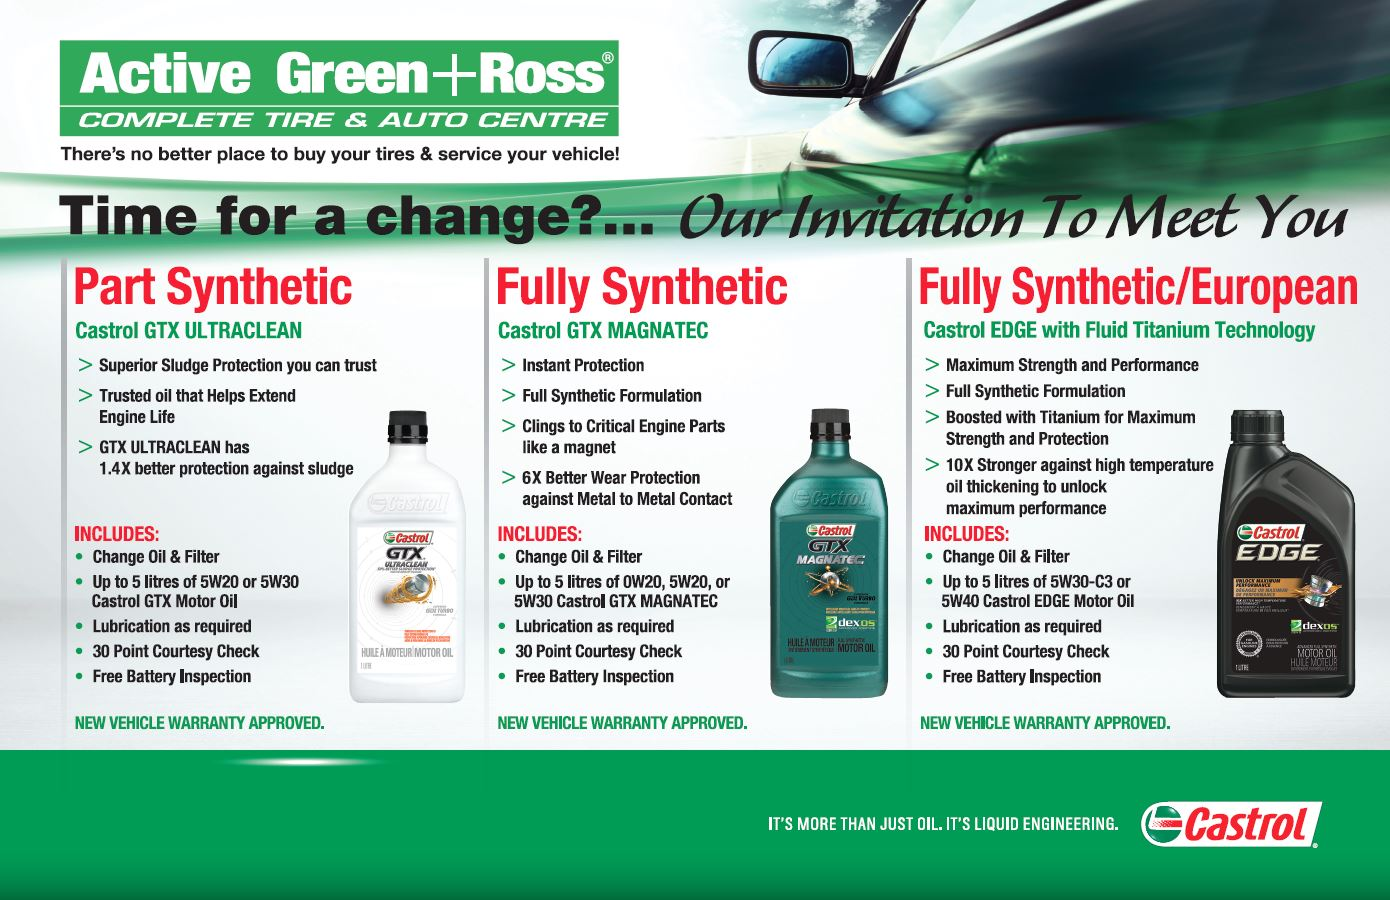 Image of Castor Oil Change Services - Active Green + Ross Complete Tire & Auto Centre